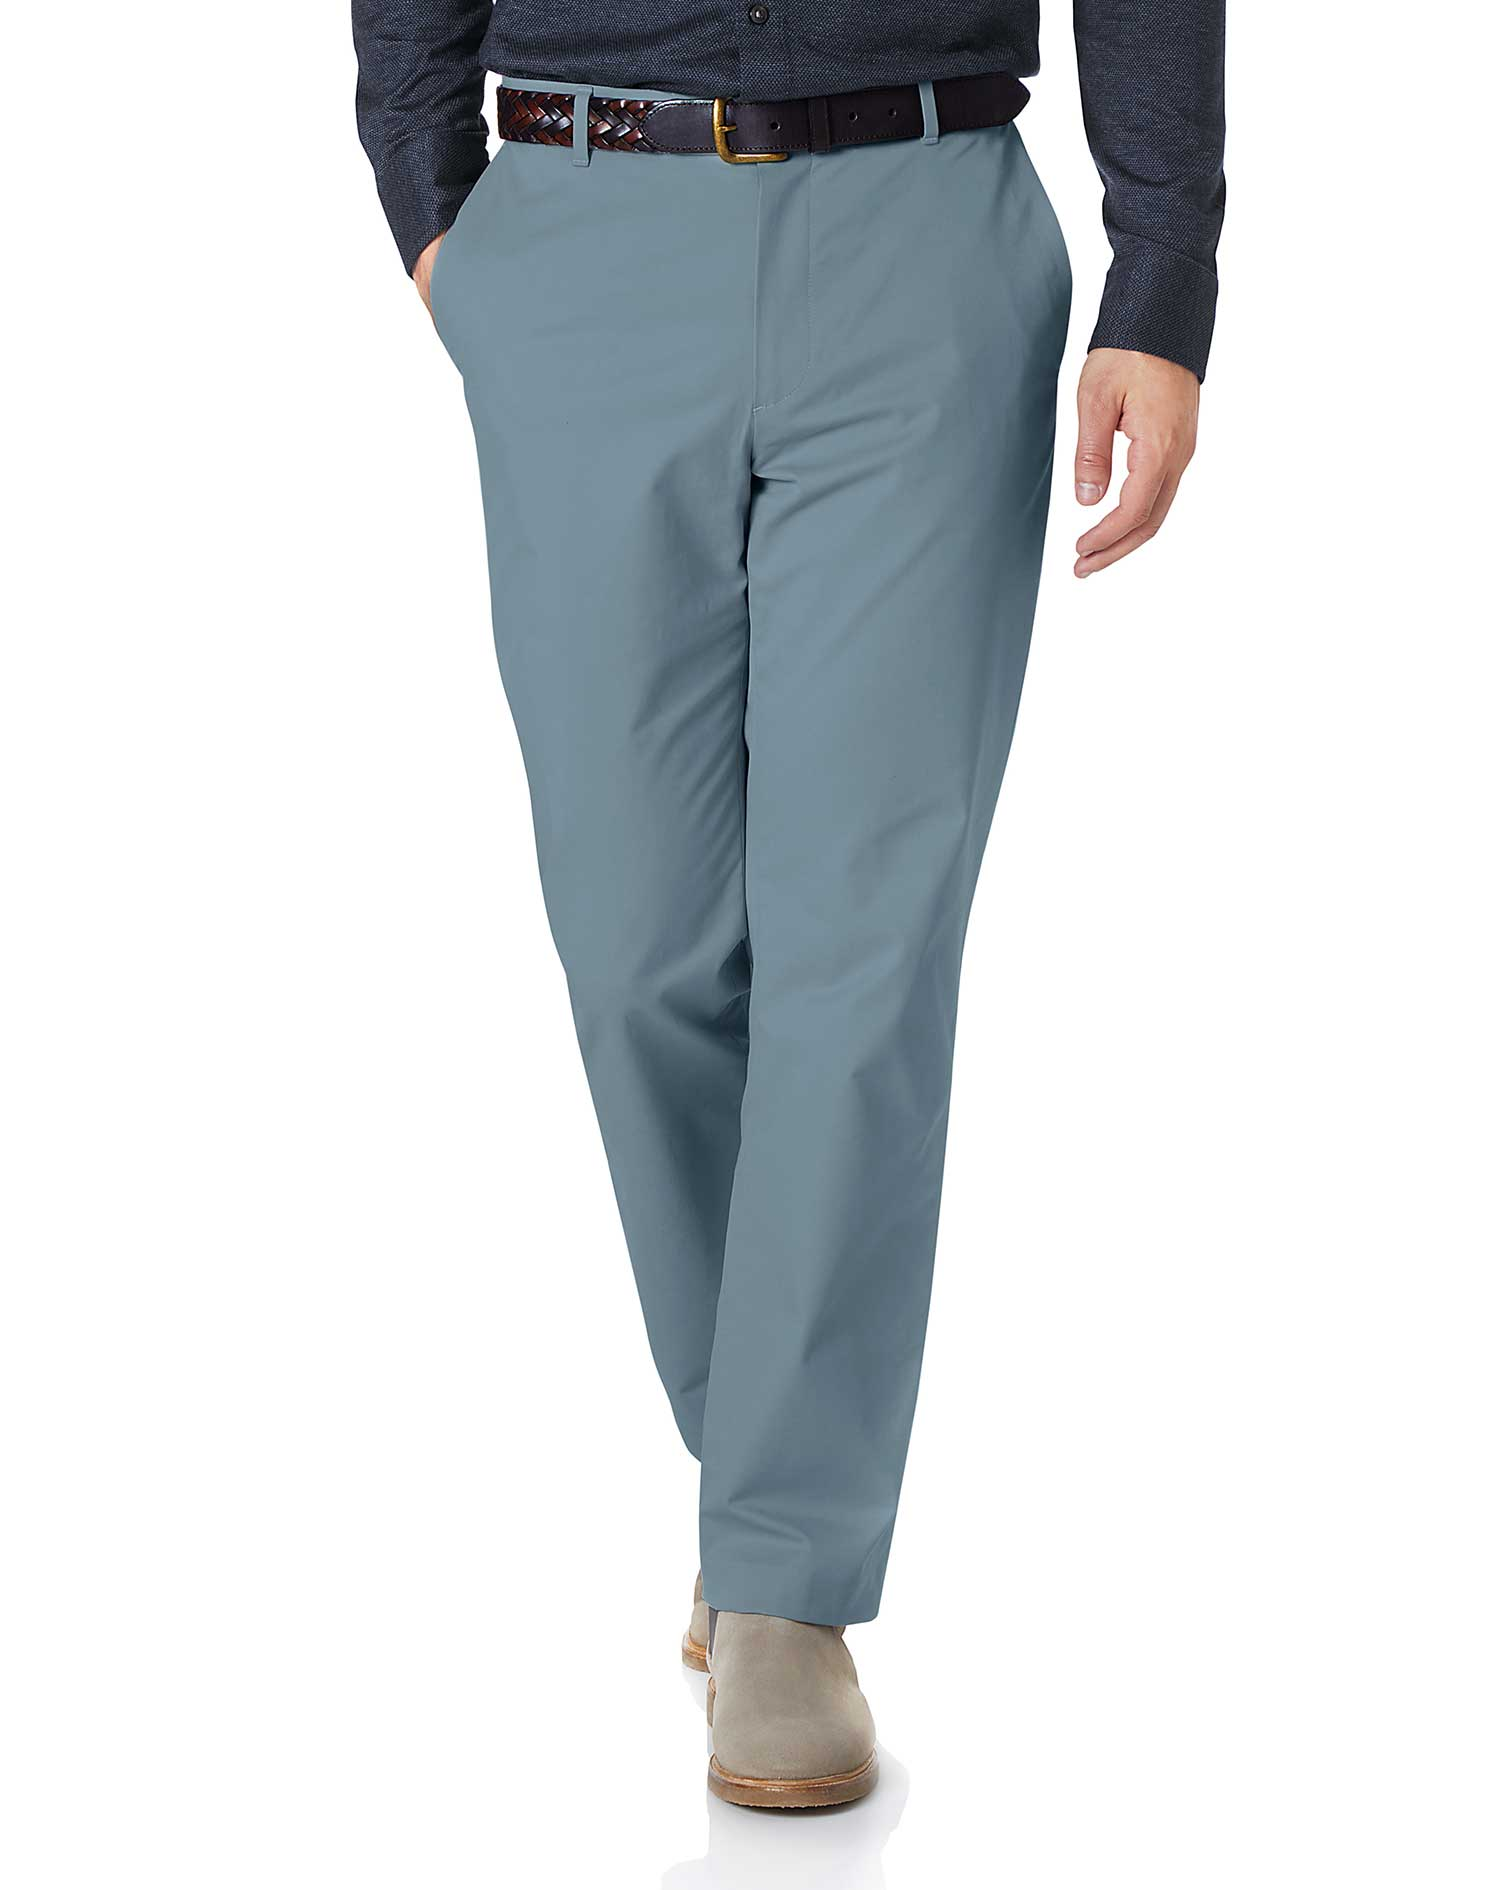 Sky Blue Classic Fit Stretch Cotton Chino Trousers Size W40 L34 by Charles Tyrwhitt